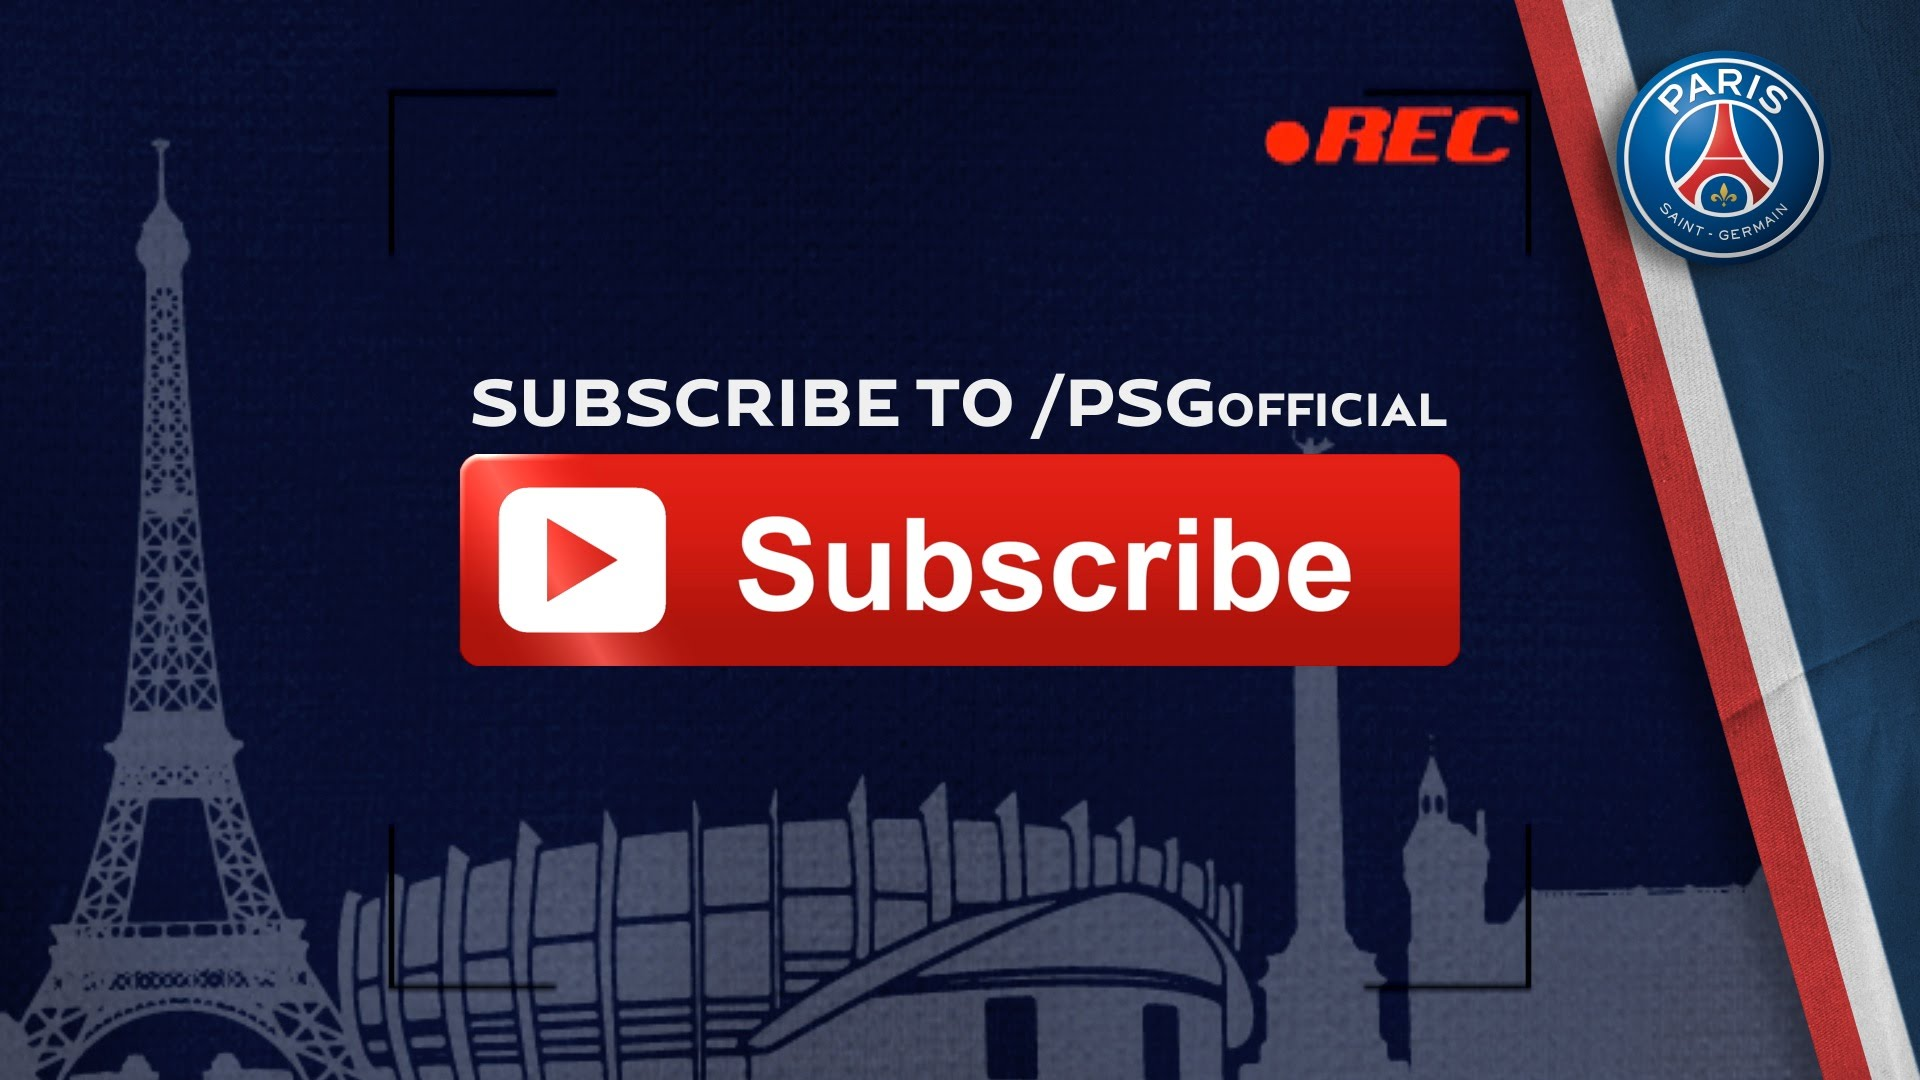 SUBSCRIBE TO /PSGofficial